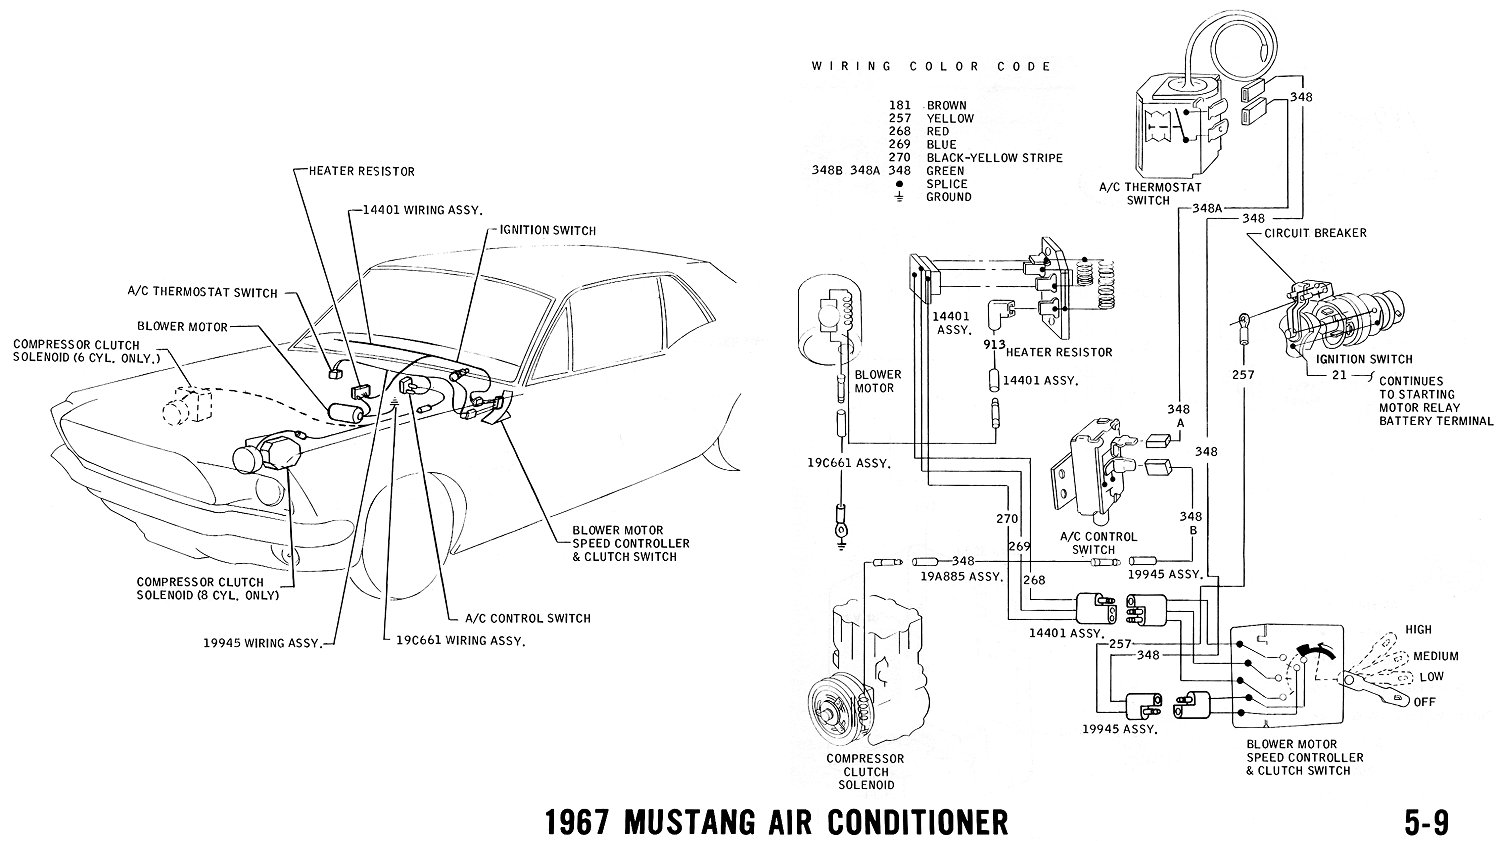 67ac 1967 mustang wiring and vacuum diagrams average joe restoration 2007 Mustang Wiring Diagram at reclaimingppi.co